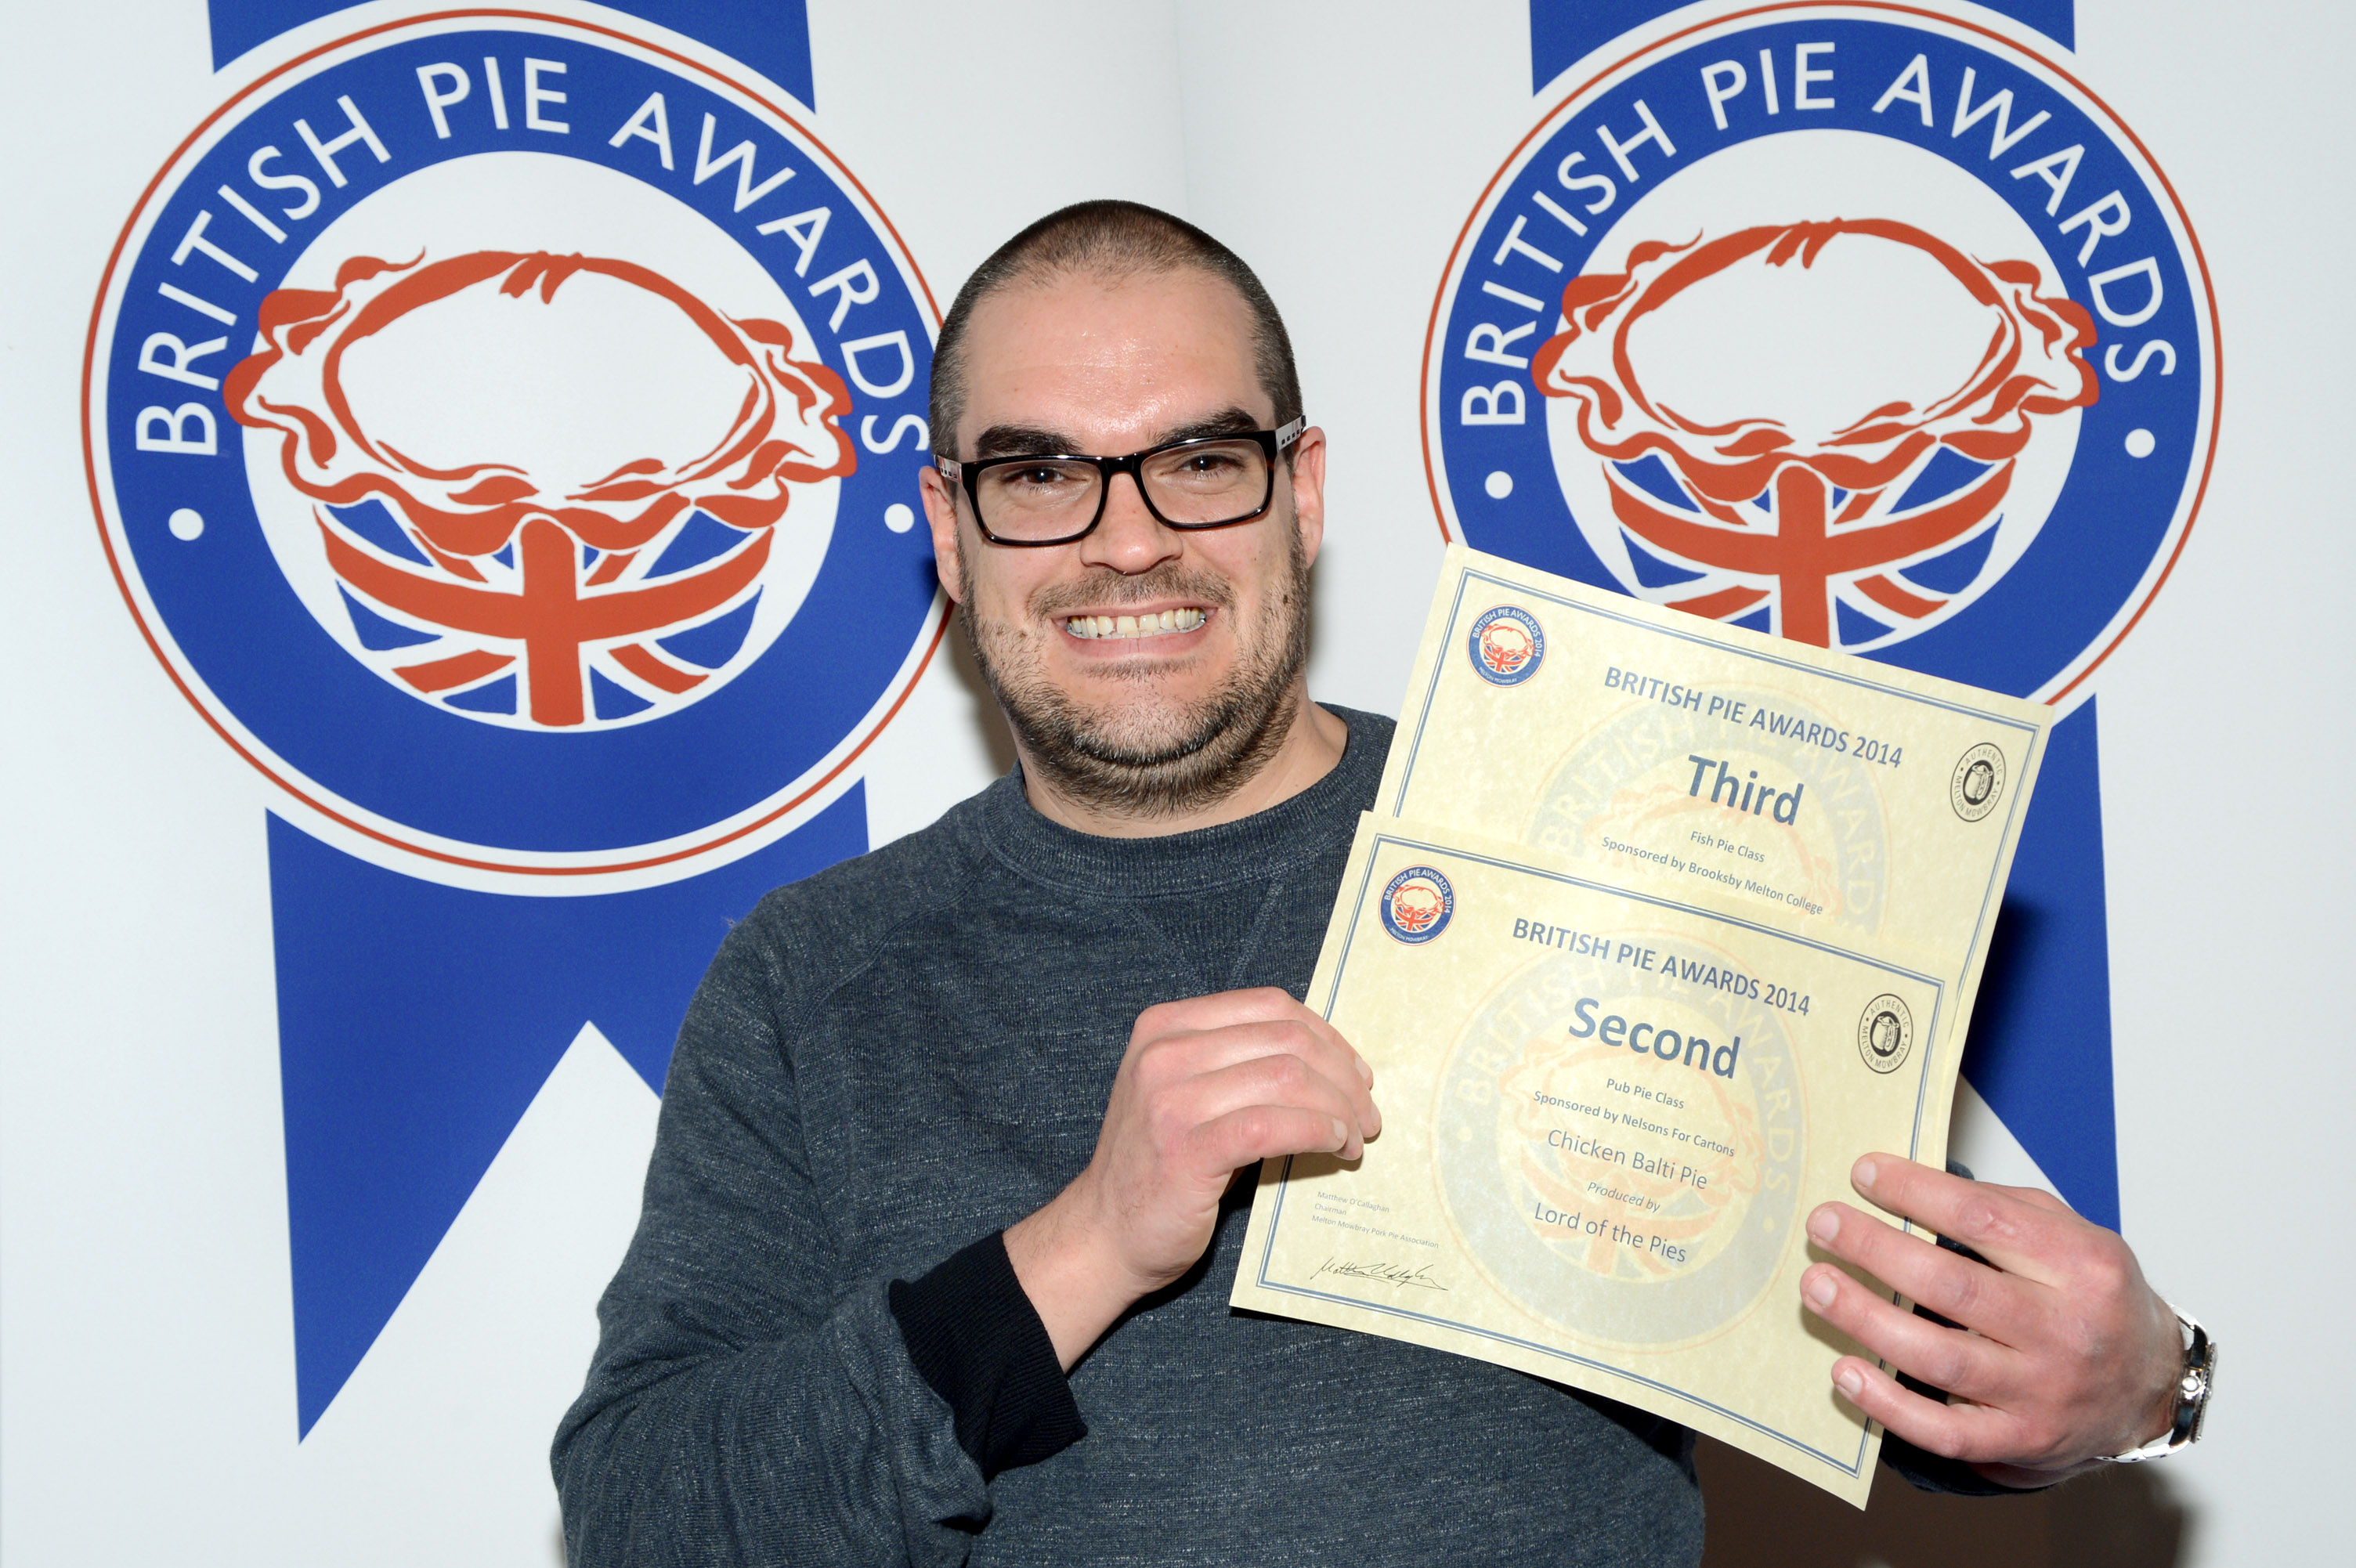 Brititsh Pie Awards 2014